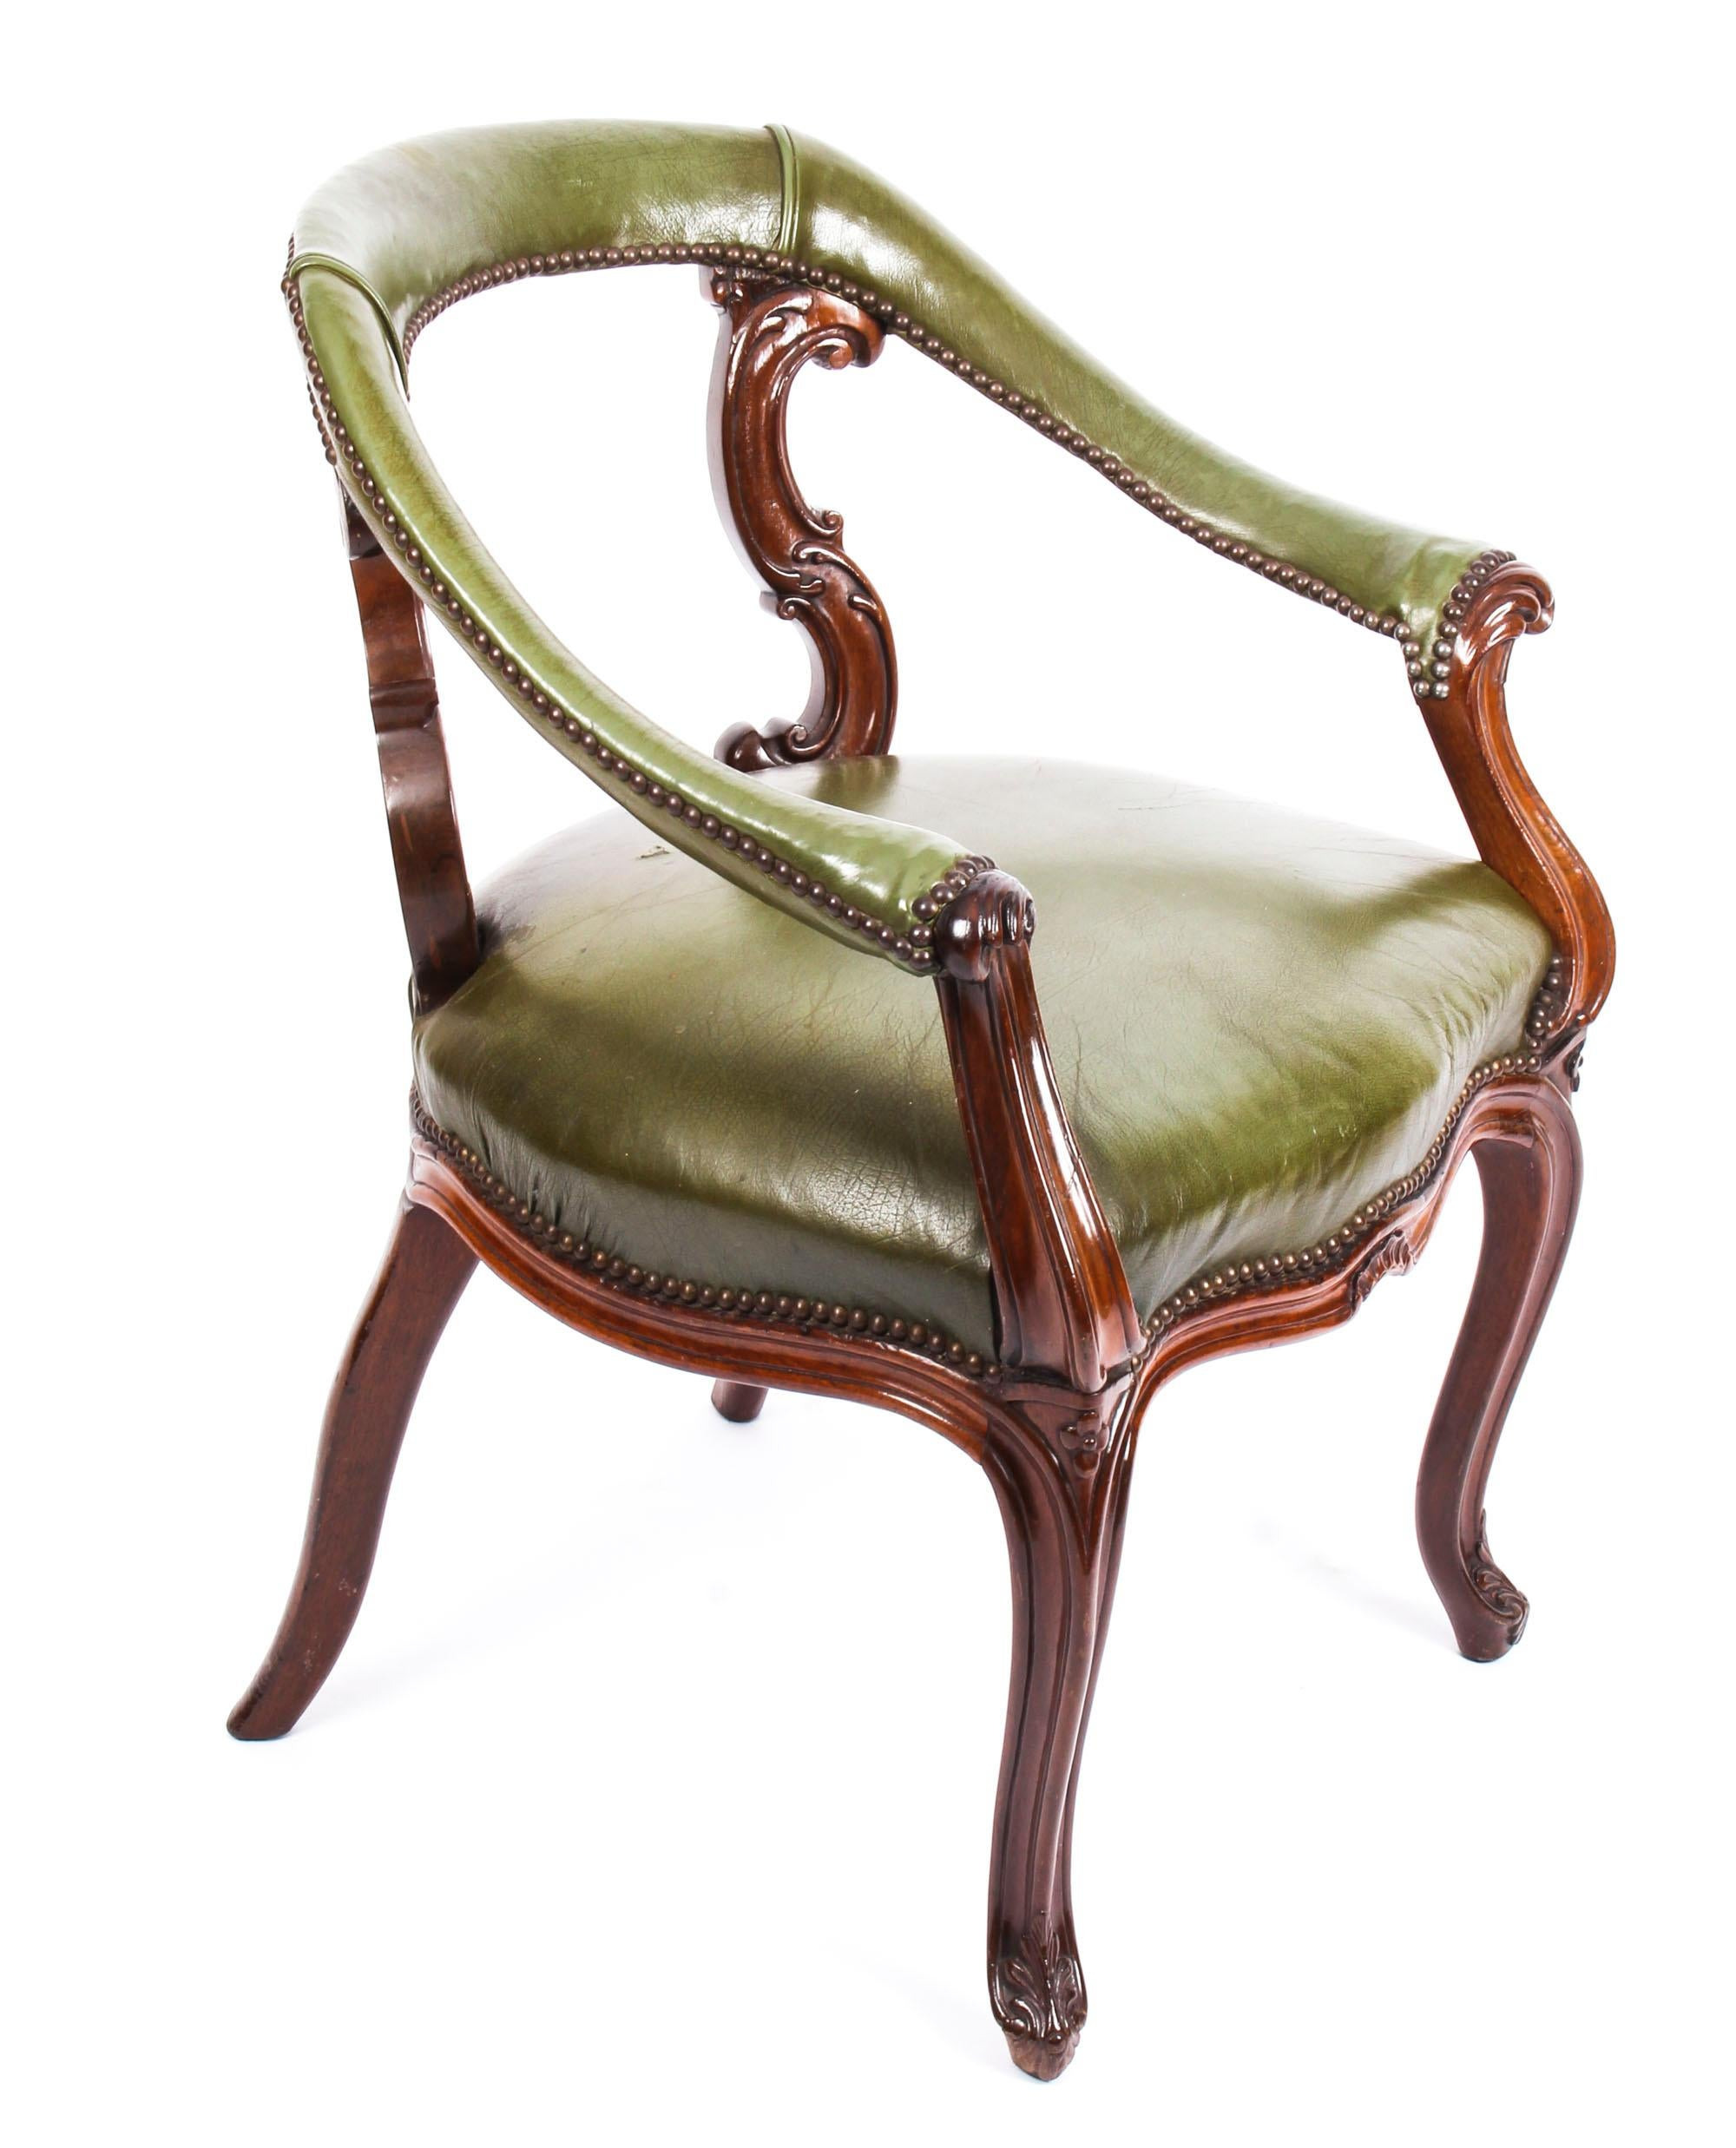 Antique Victorian Mahogany Library Chair Armchair C1860 19th Century 9 master